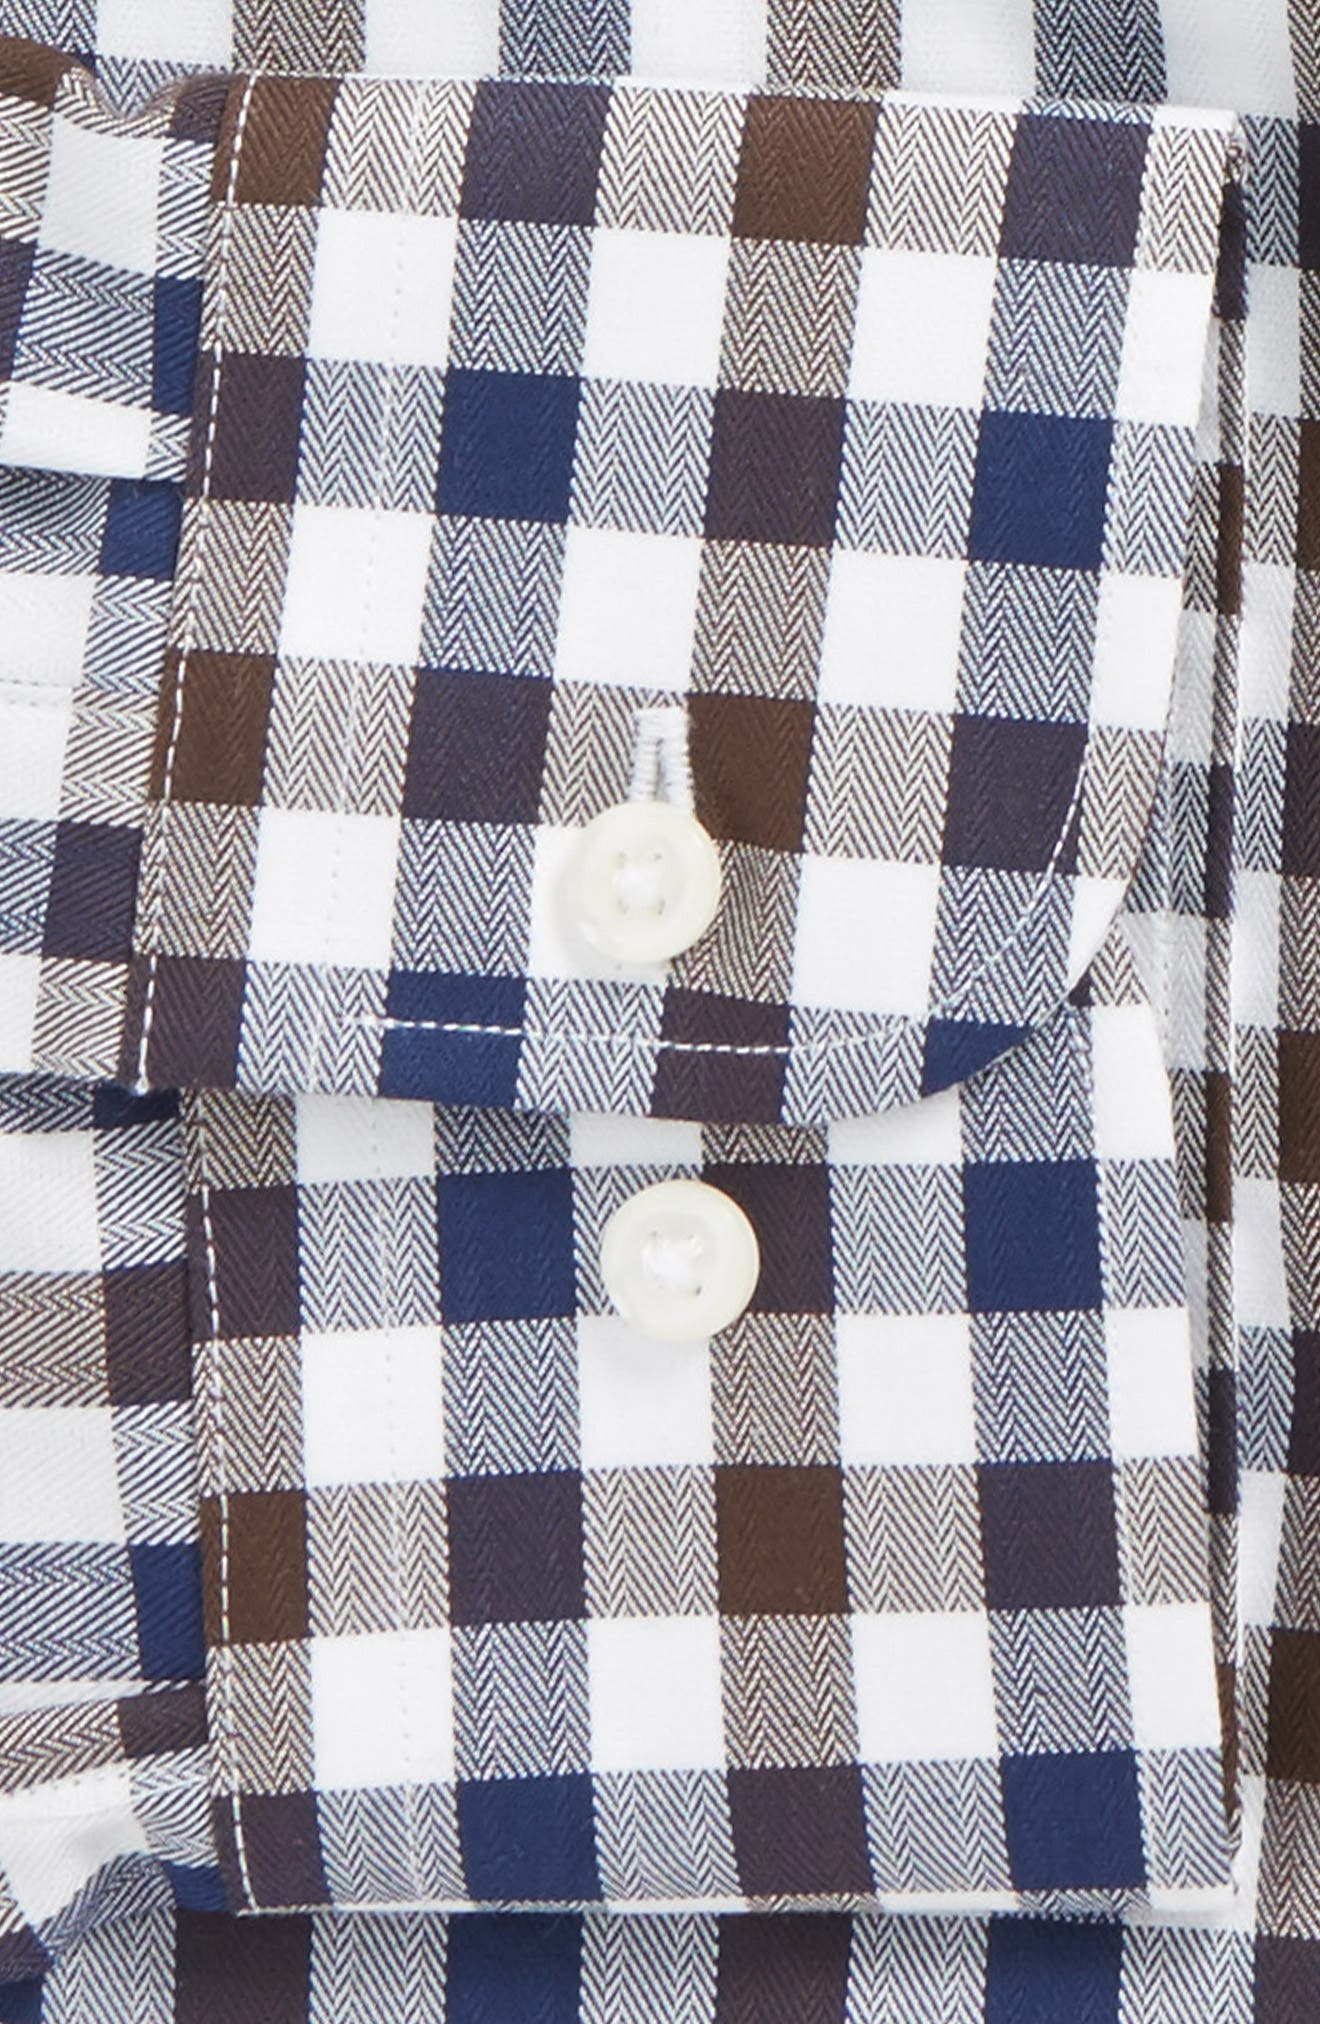 Trim Fit Check Dress Shirt,                             Alternate thumbnail 2, color,                             Brown Cocoa